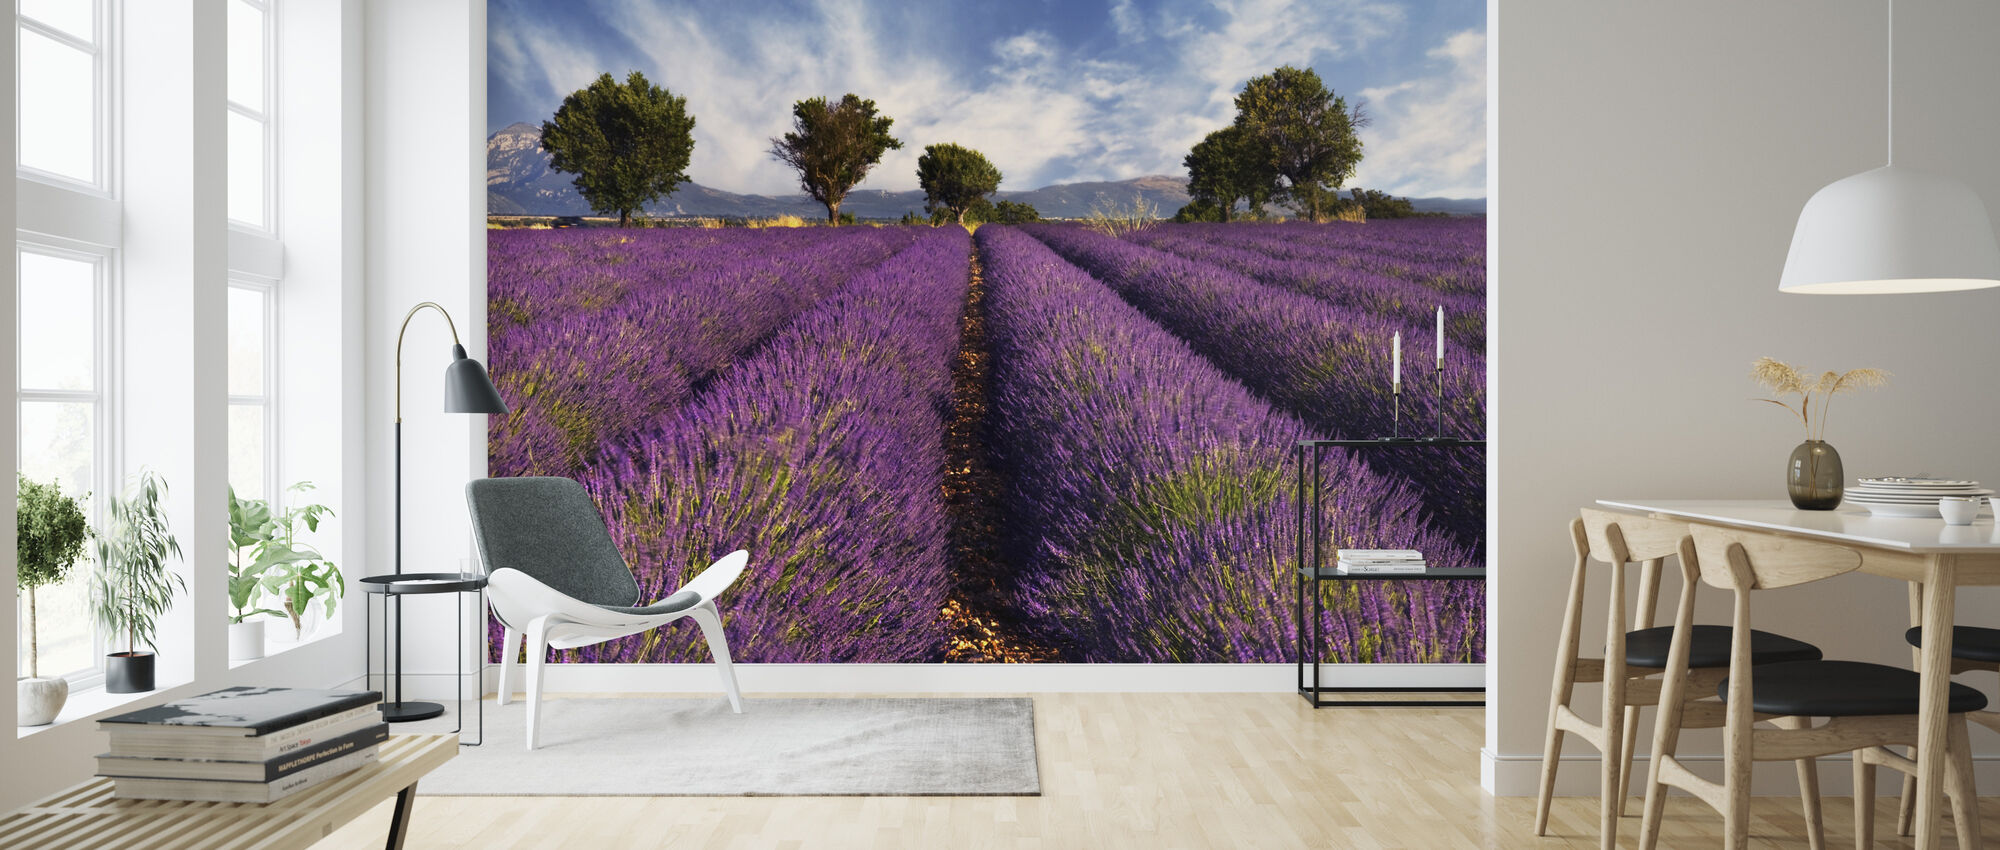 Lavender Field in Provence - Wallpaper - Living Room